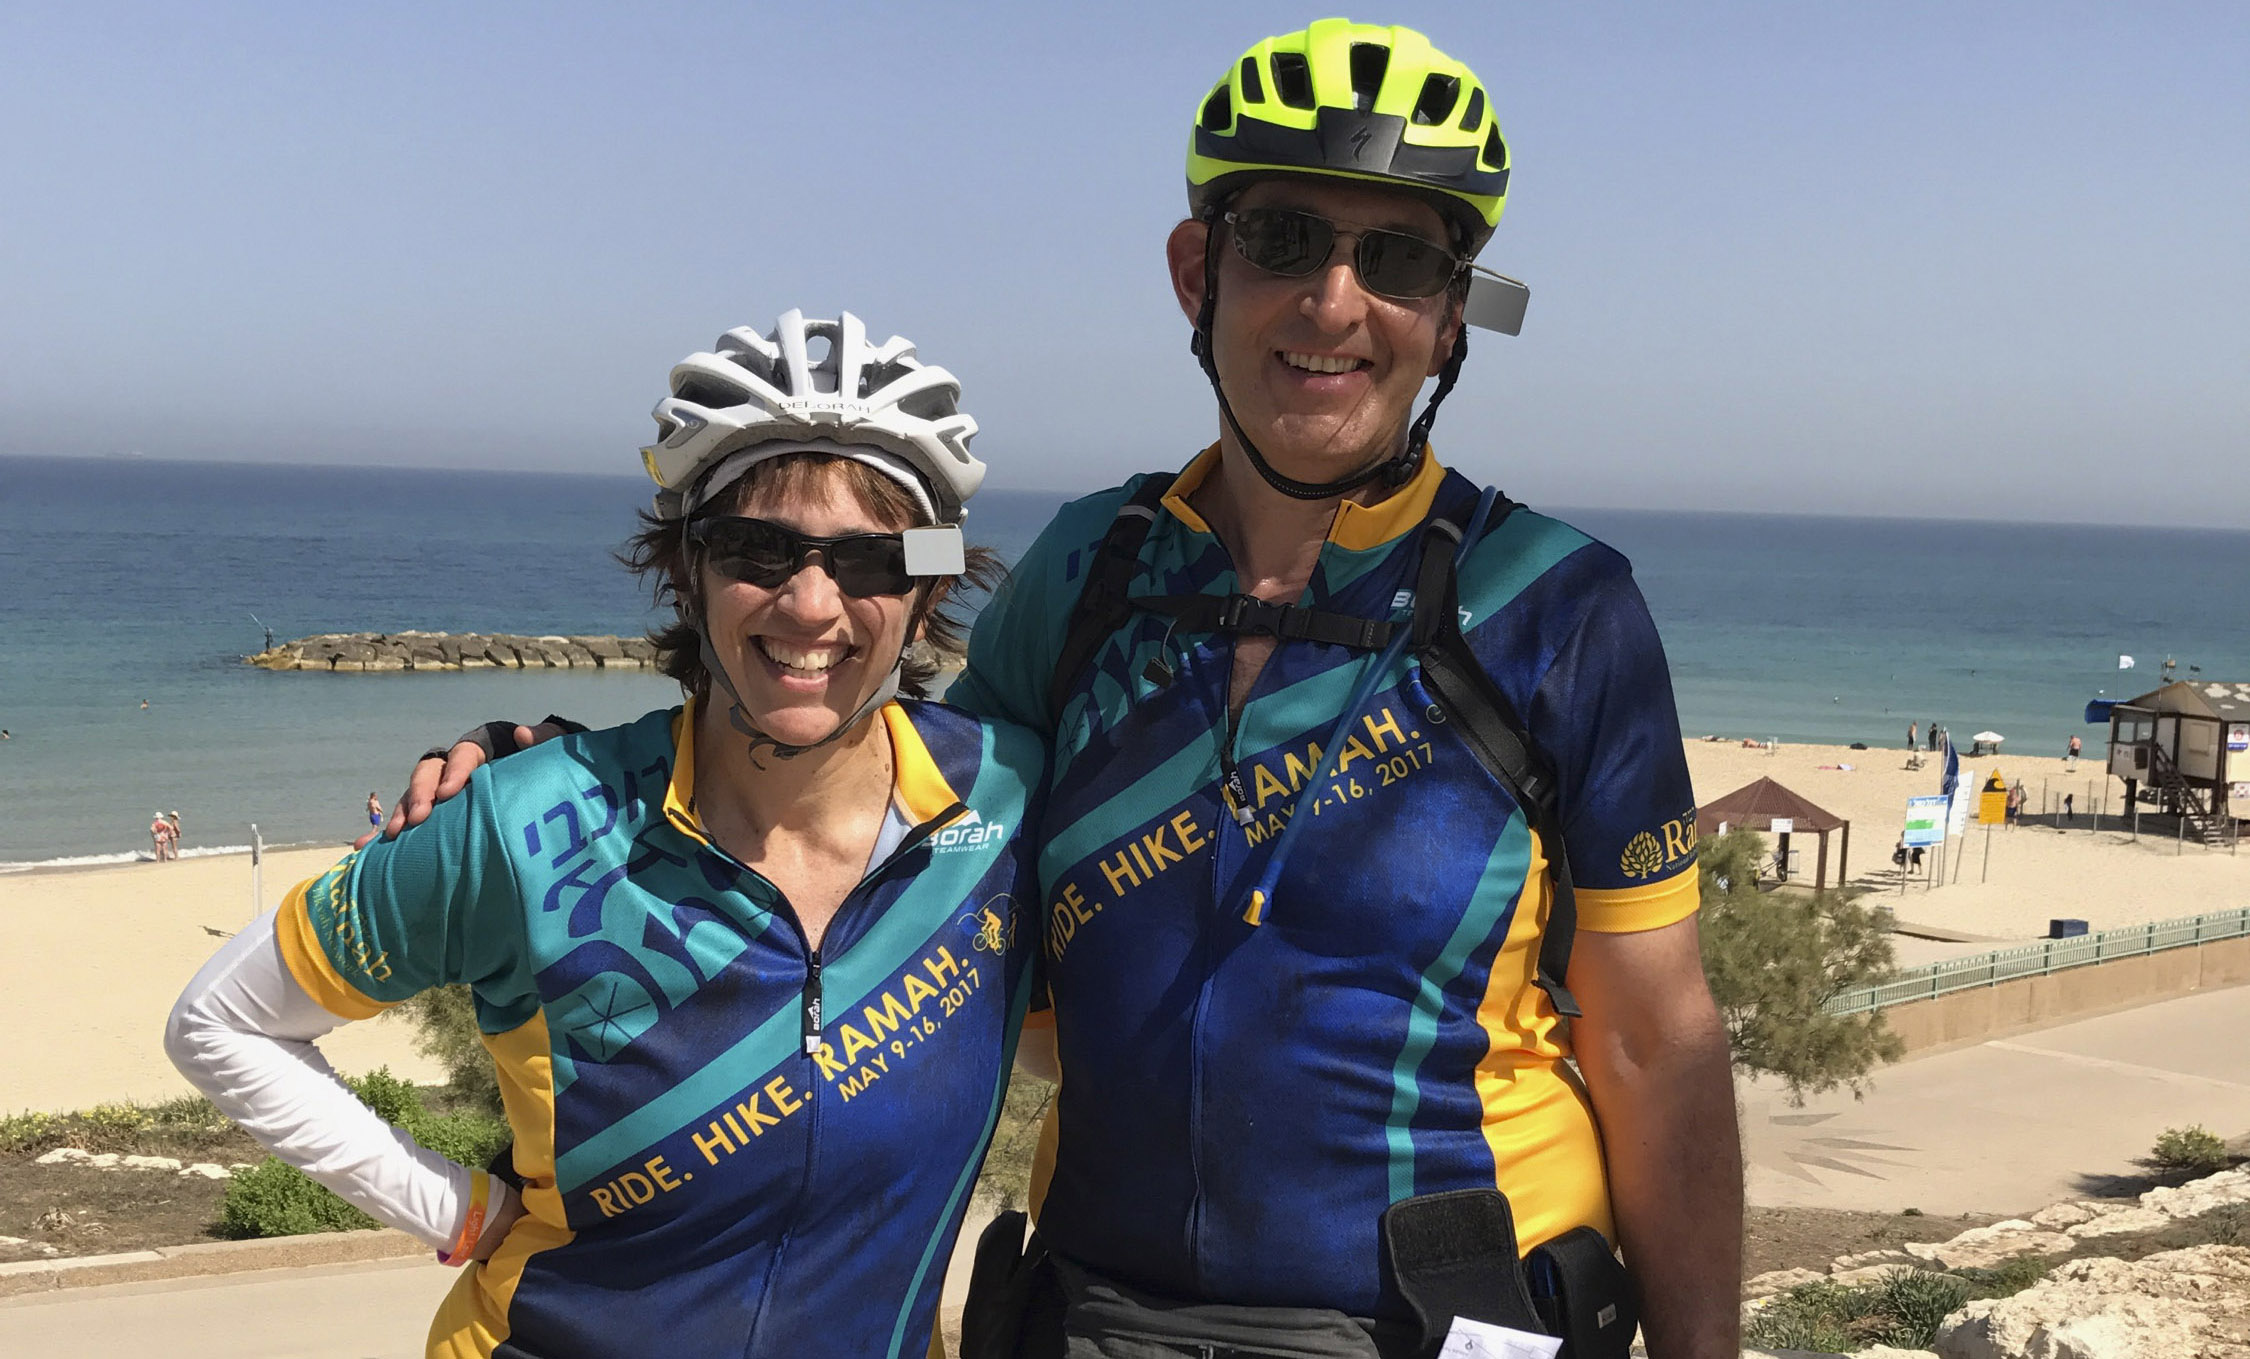 the two stand in pro cycling gear on a beach